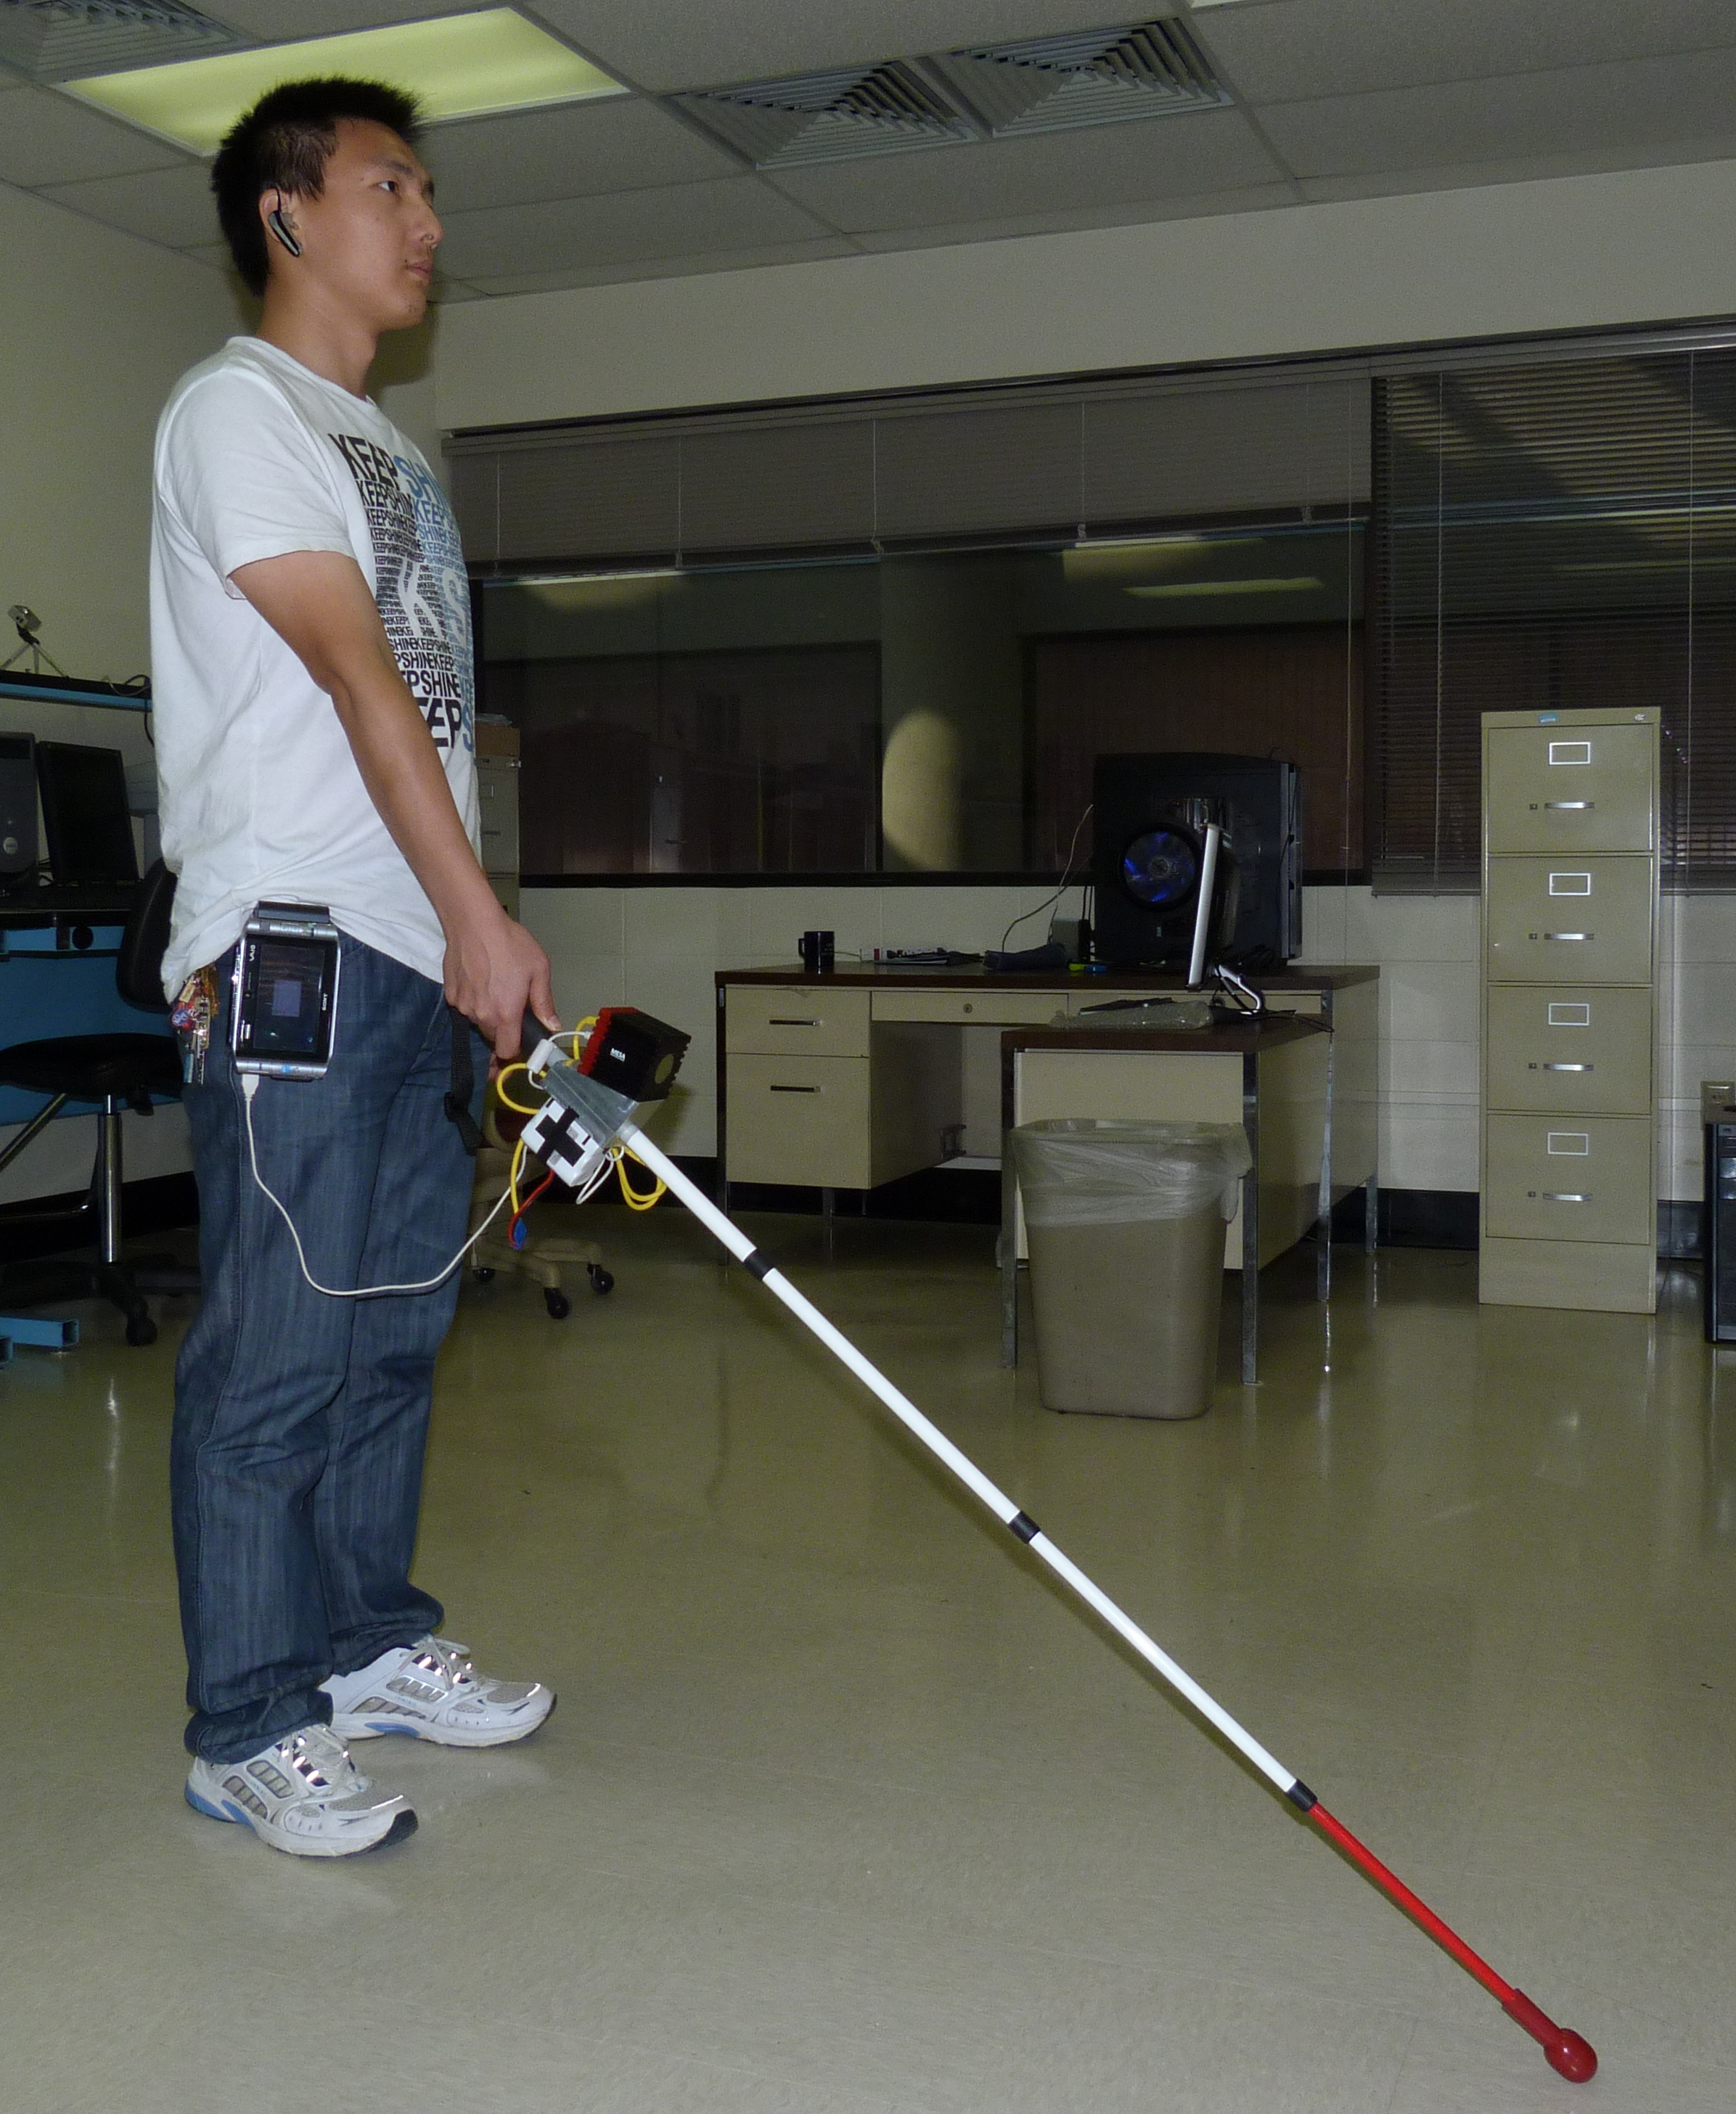 This is an image of a person holding the prototype of the co-robotic cane.